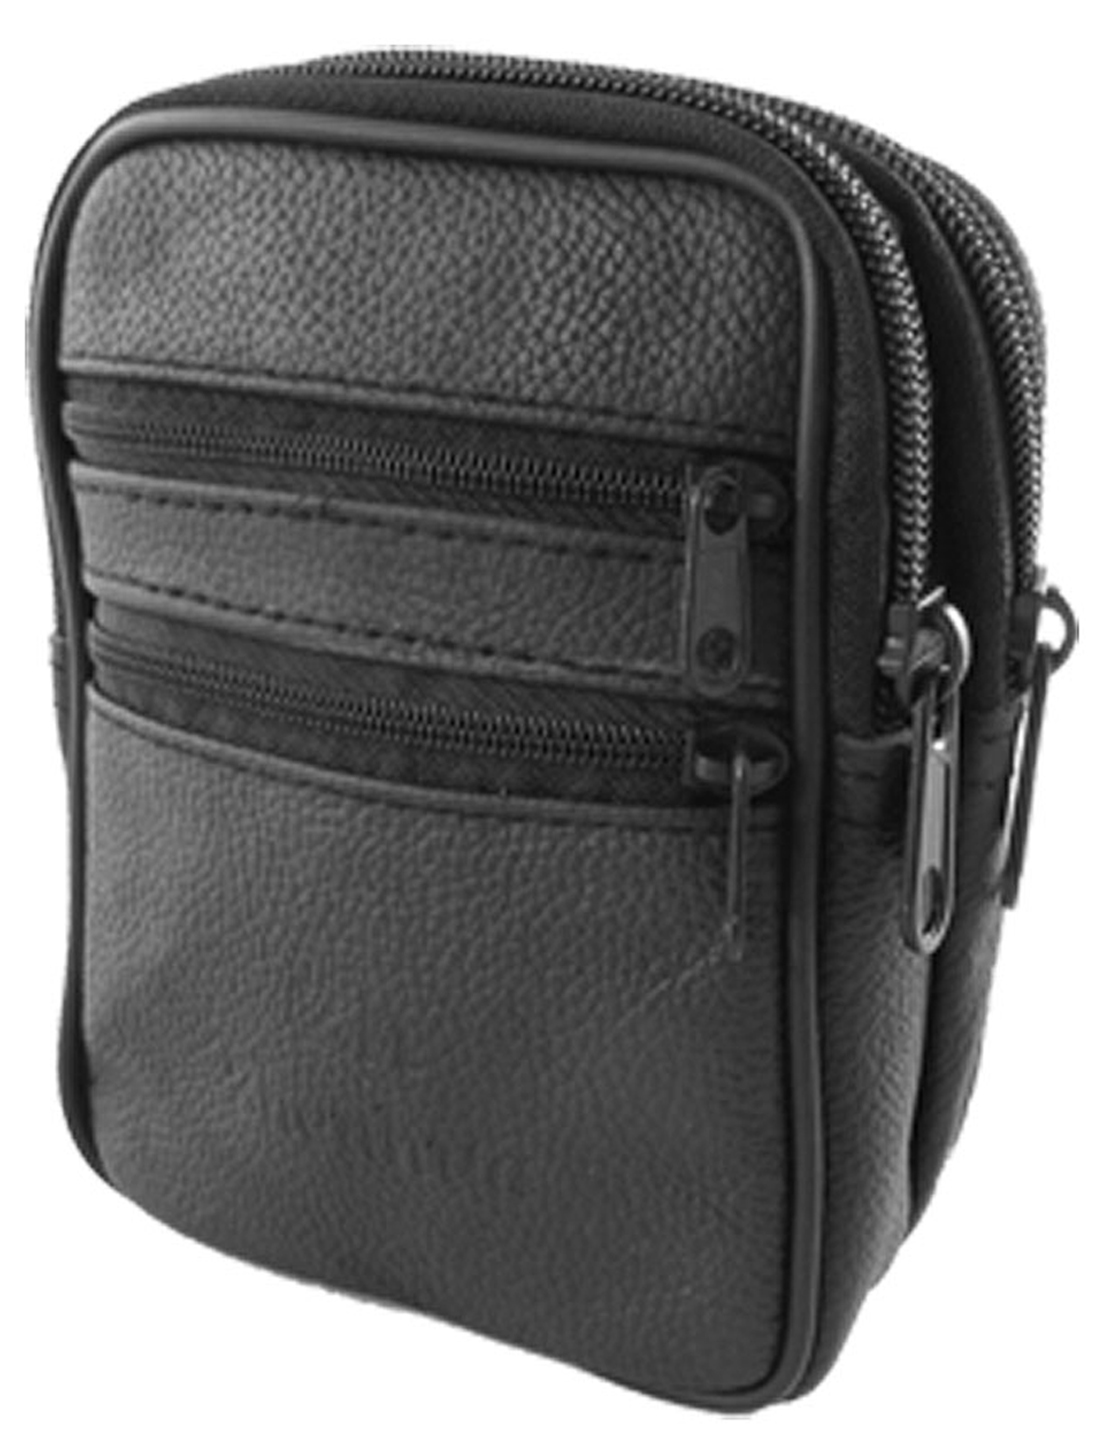 Black Fauxl Leather 4 Zippered Pocket Belt Loop Waist Bag